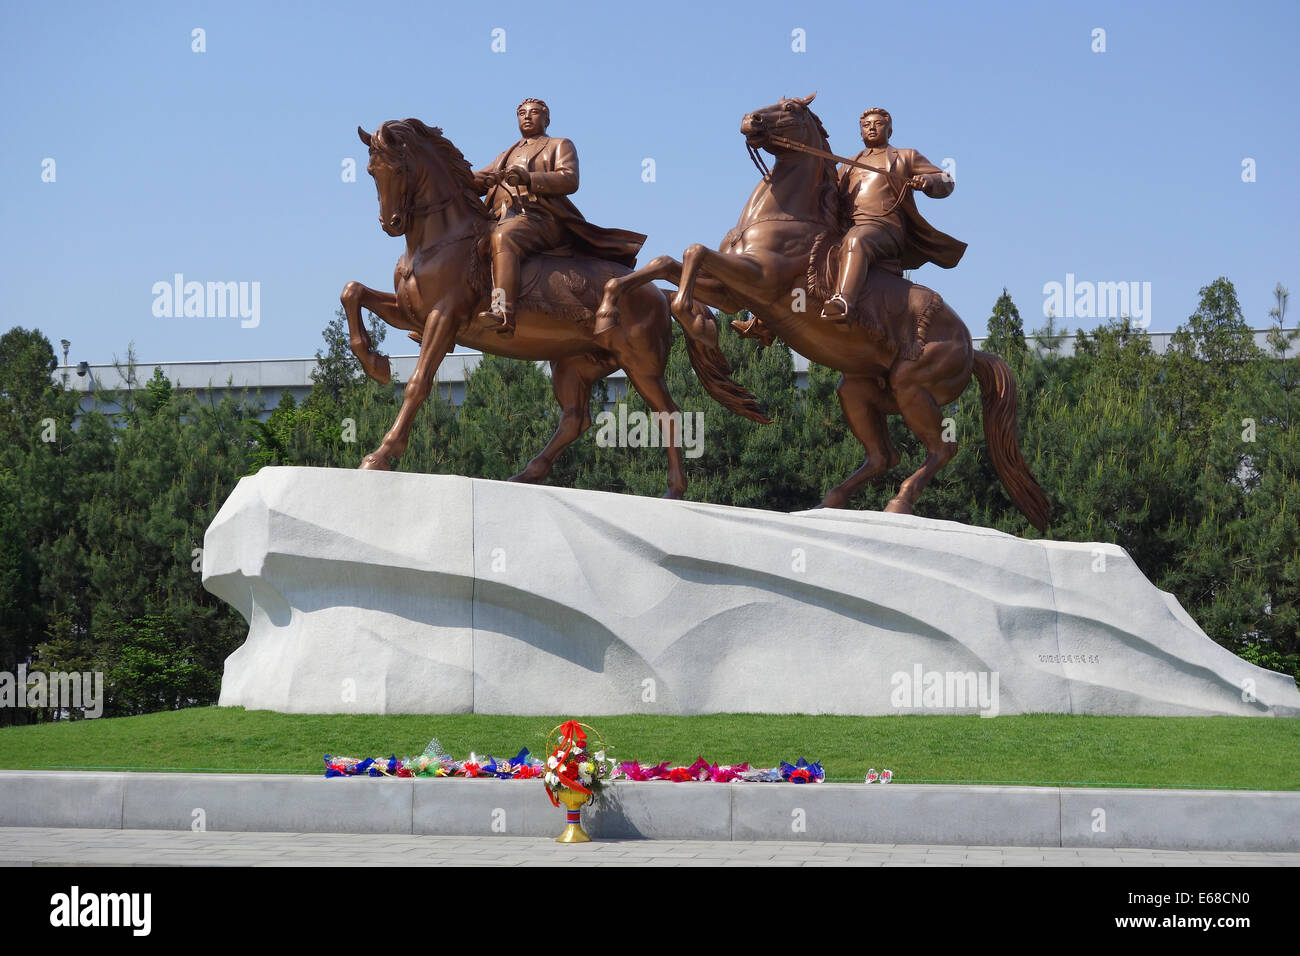 Statue of Great Leaders Kim Il Sung and Kim Jong Il, Pyongyang, North Korea - Stock Image